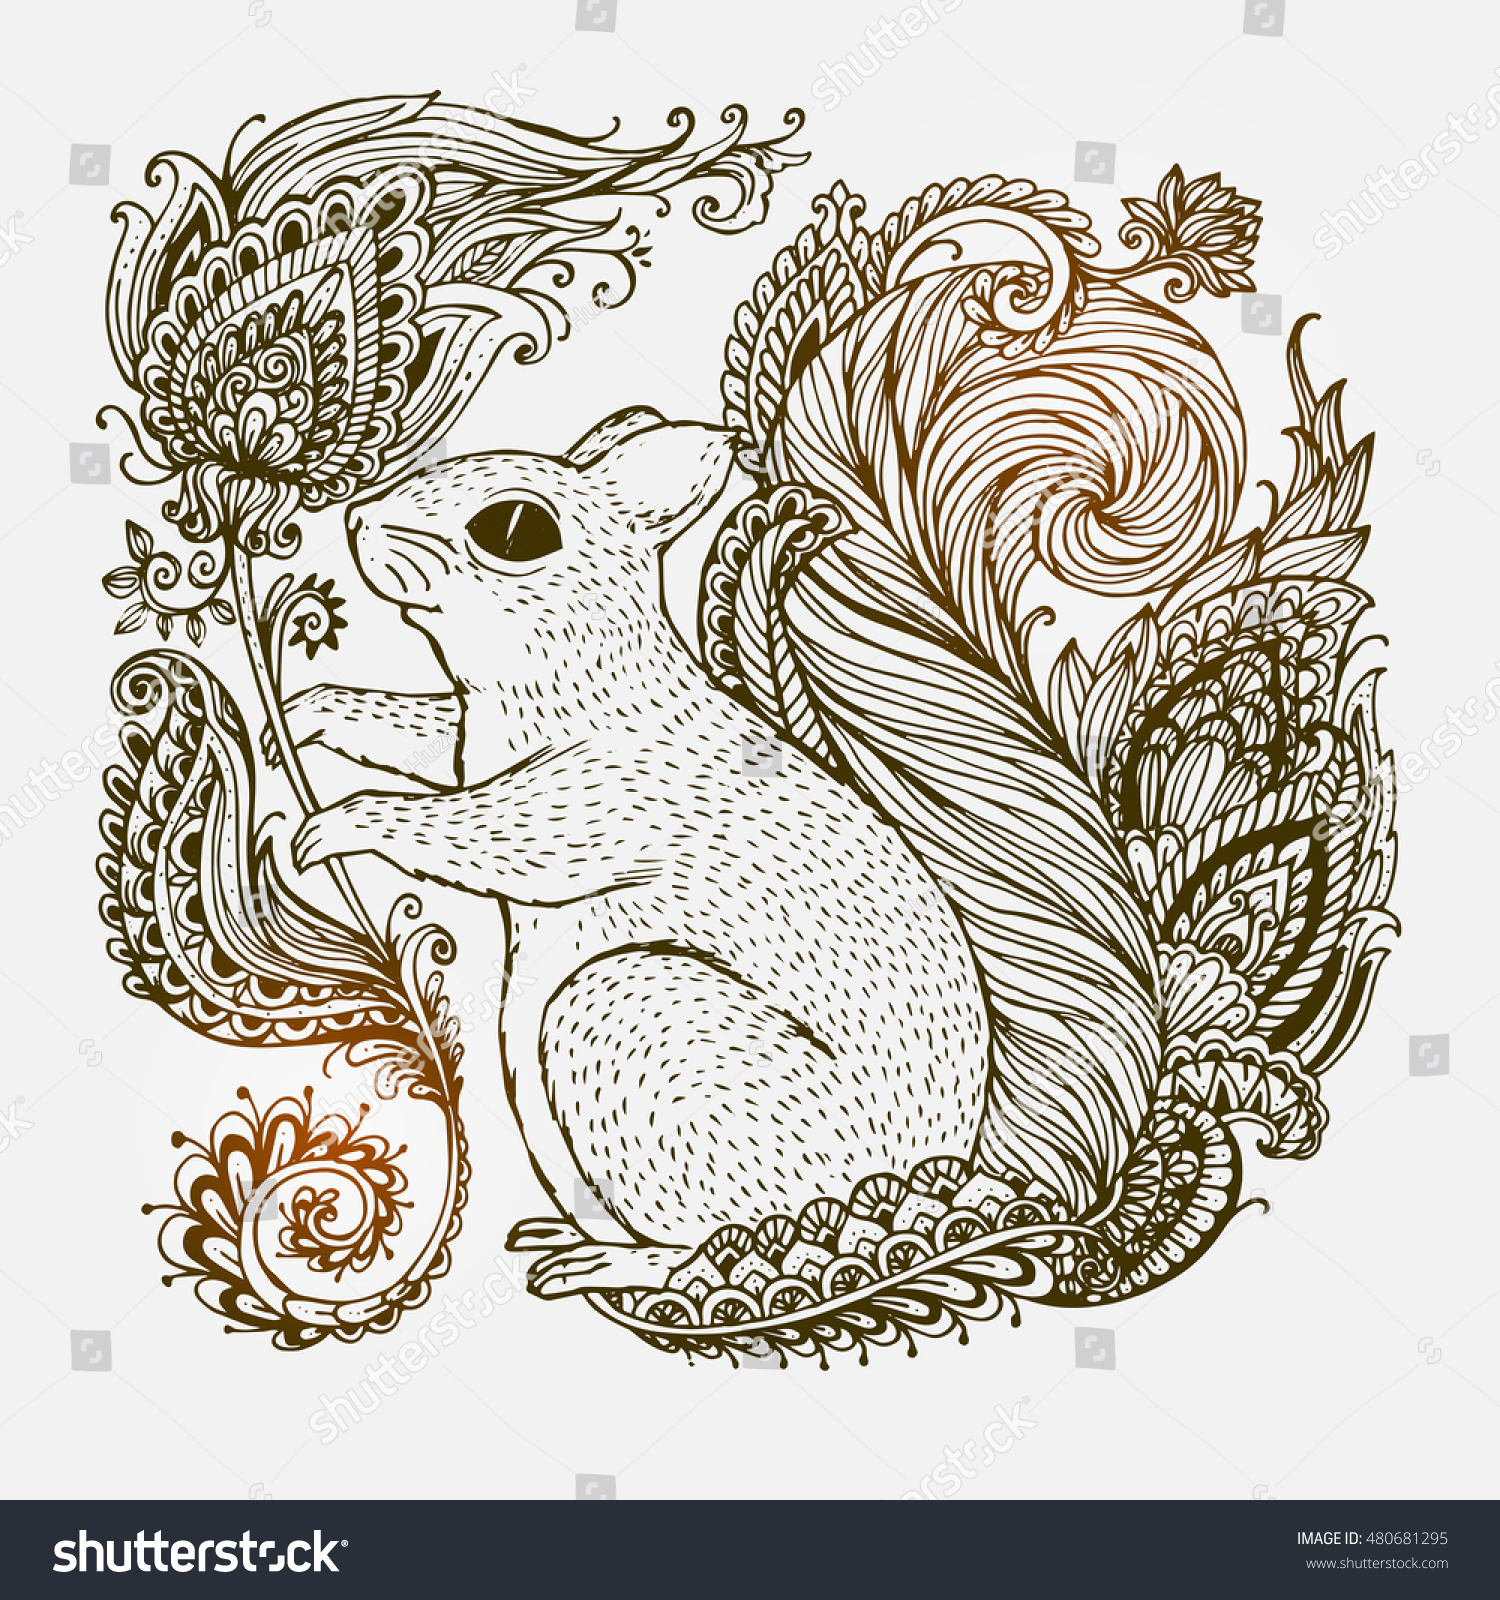 Hand-drawn Squirrel with ethnic ornaments floral doodle pattern Vector illustration Henna Mandala Zentangle stylized Design for spiritual relaxation for adults